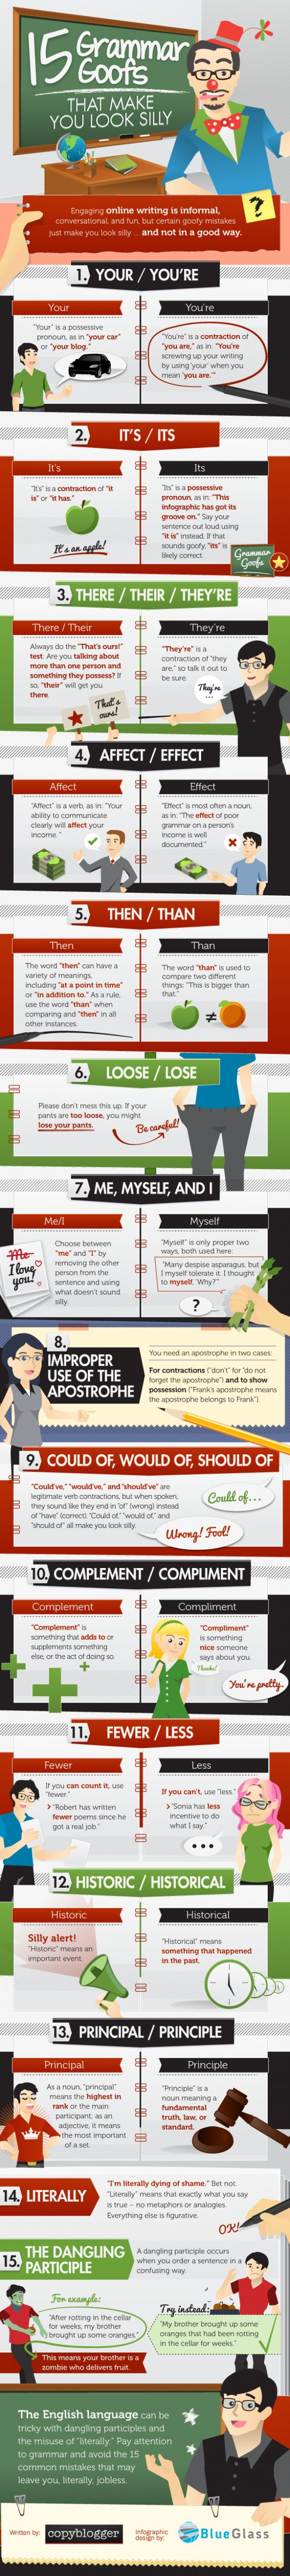 11 Infographics That Will Help You Improve Your Grammar and Spelling